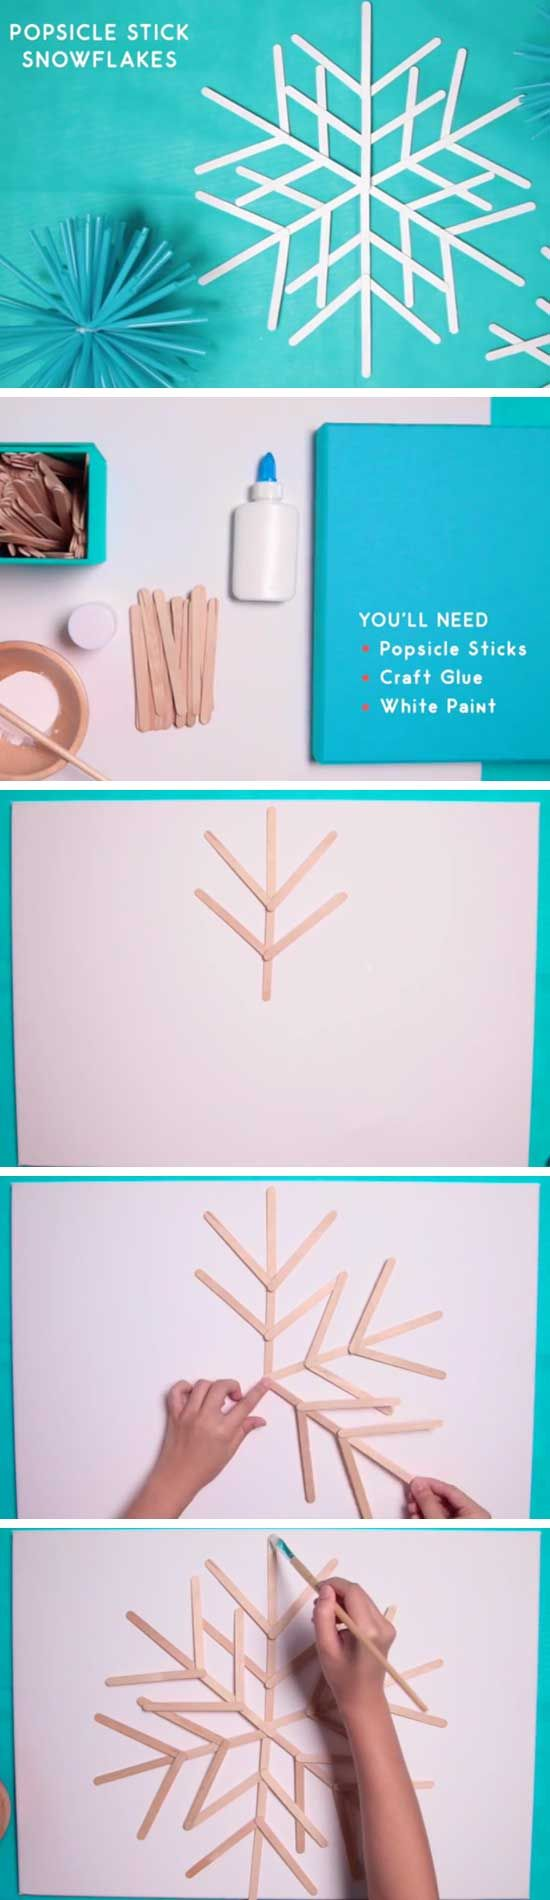 Giant Popsicle Stick Snowflakes | DIY Christmas Decorations for Home Cheap | DIY Christmas Decorations Dollar Store